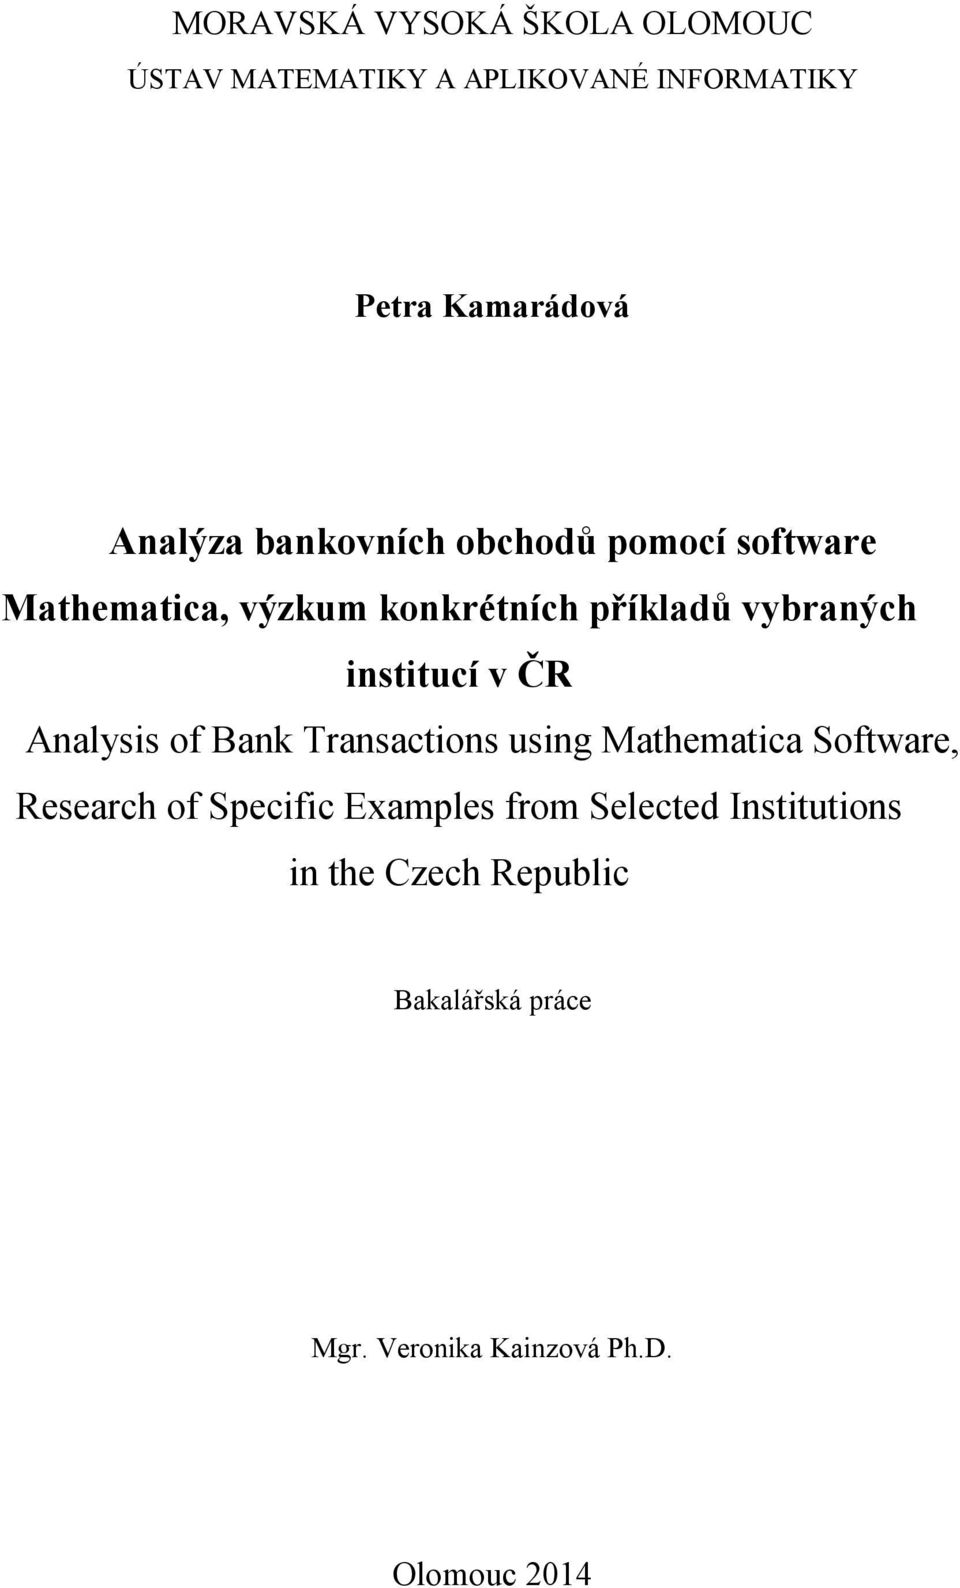 ČR Analysis of Bank Transactions using Mathematica Software, Research of Specific Examples from